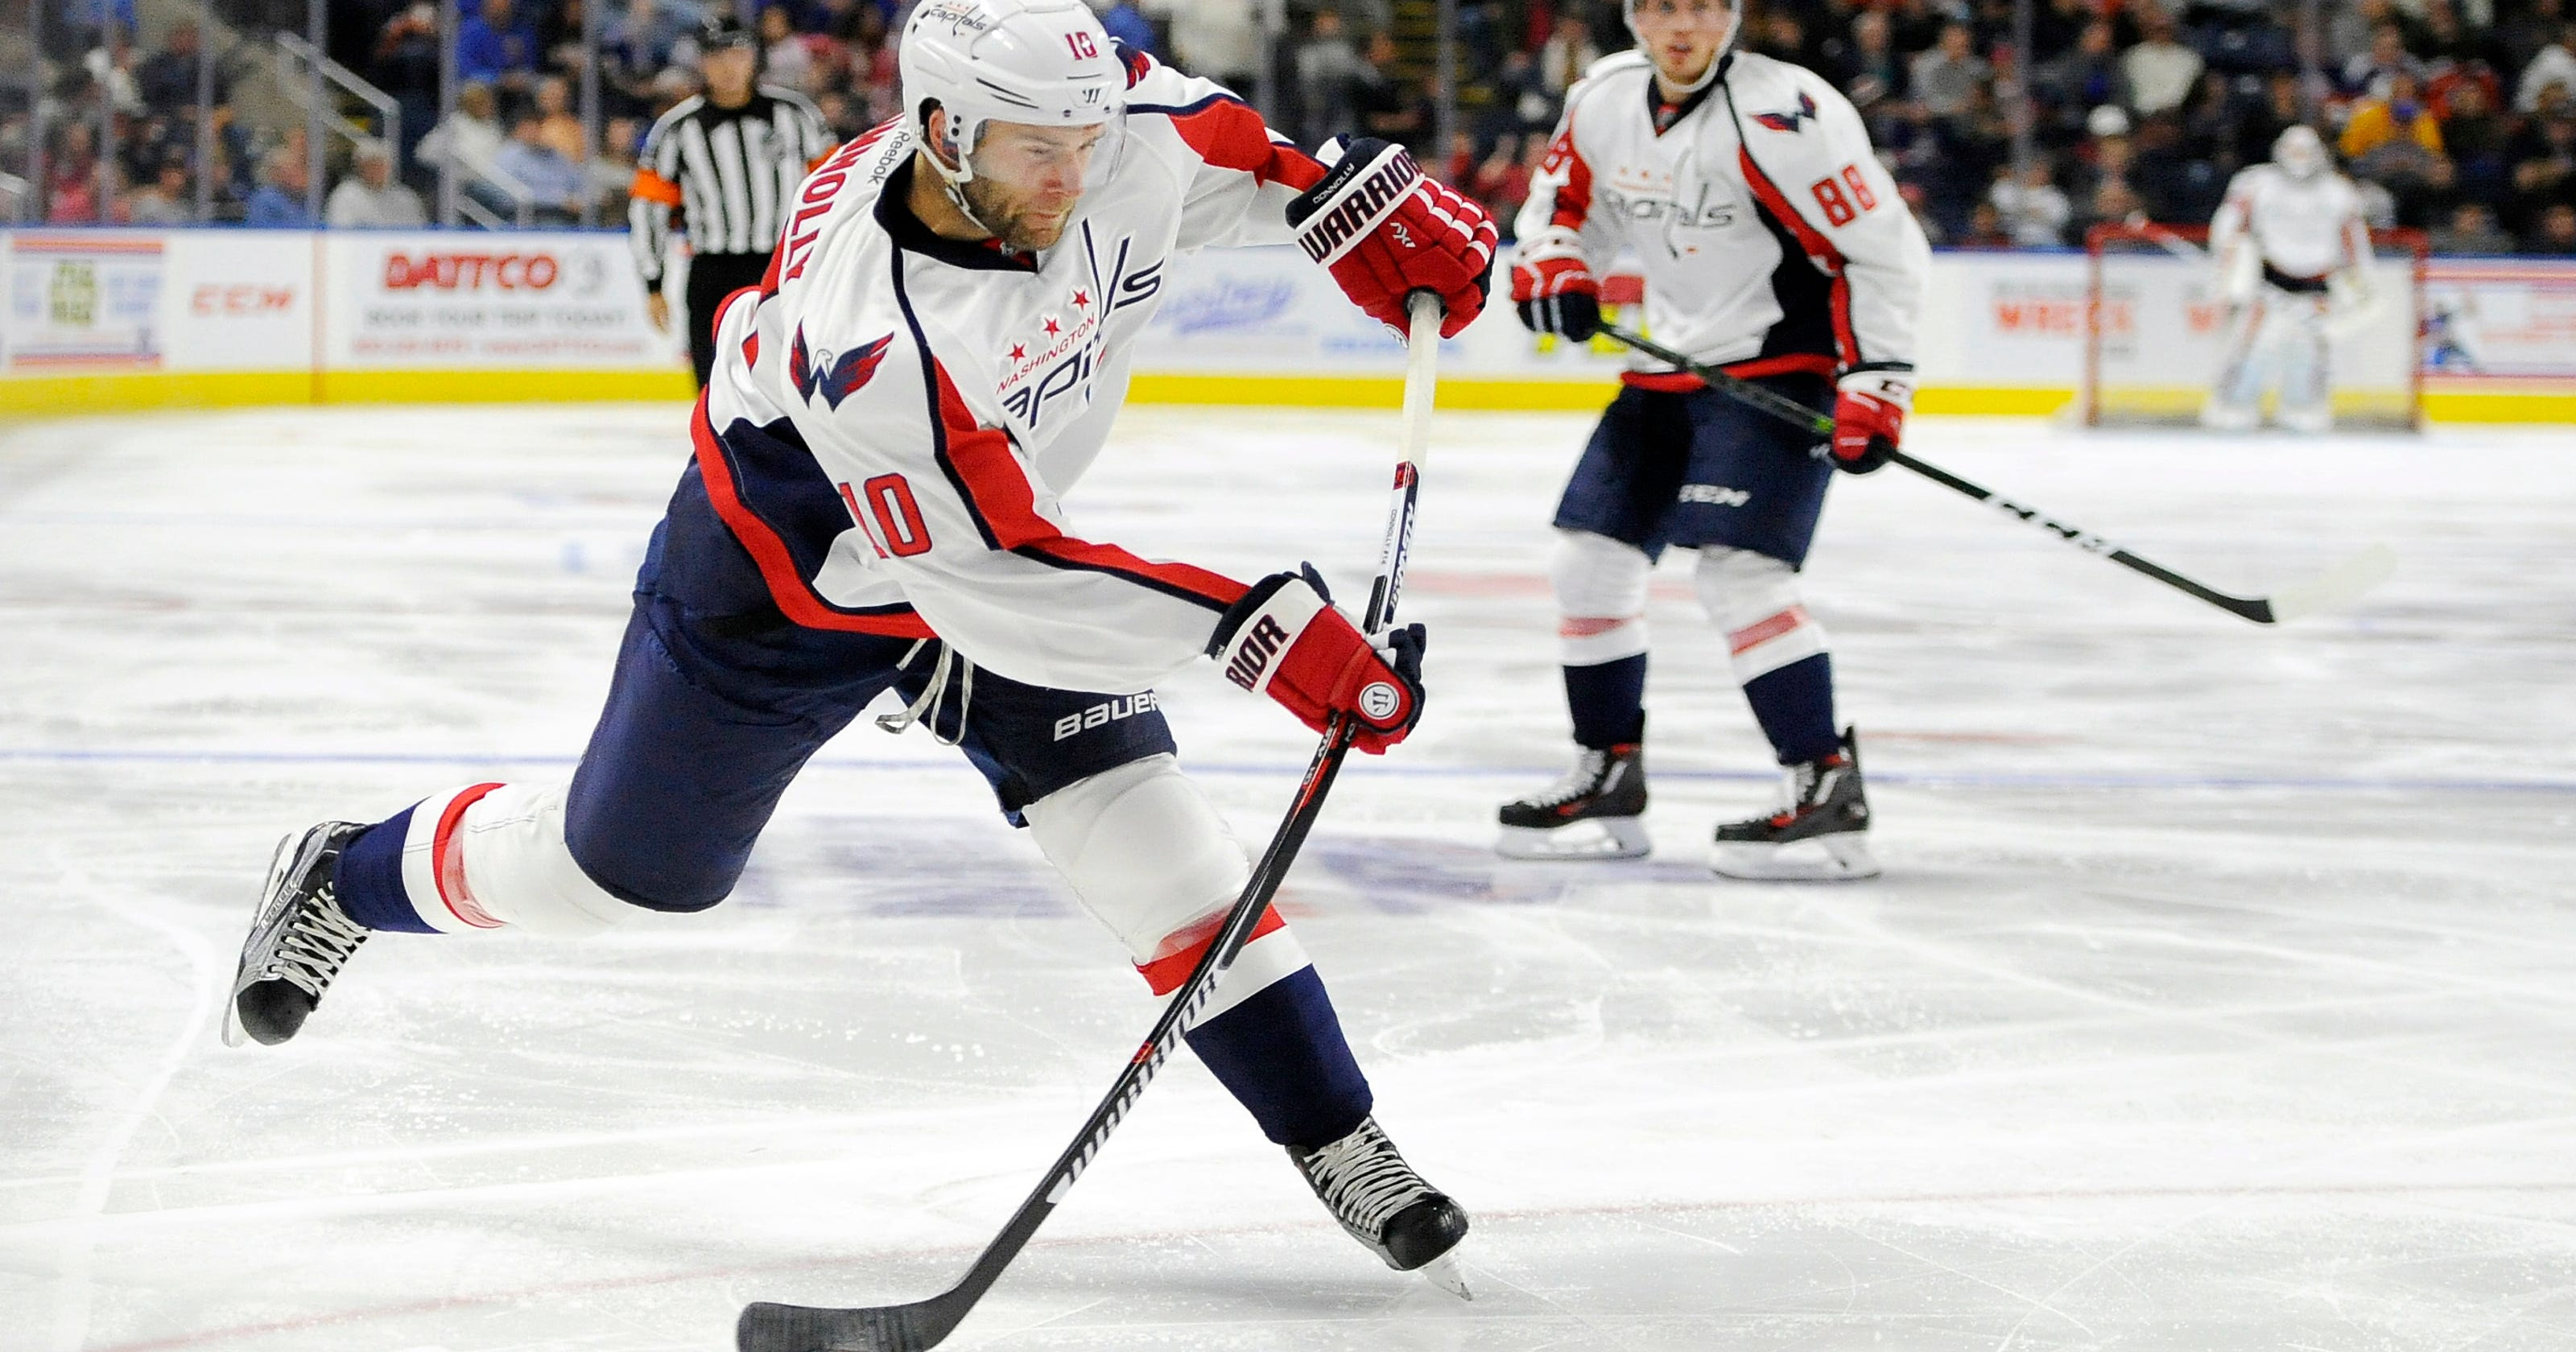 b5cb1333b Connolly rediscovers game, revitalizes career with Capitals